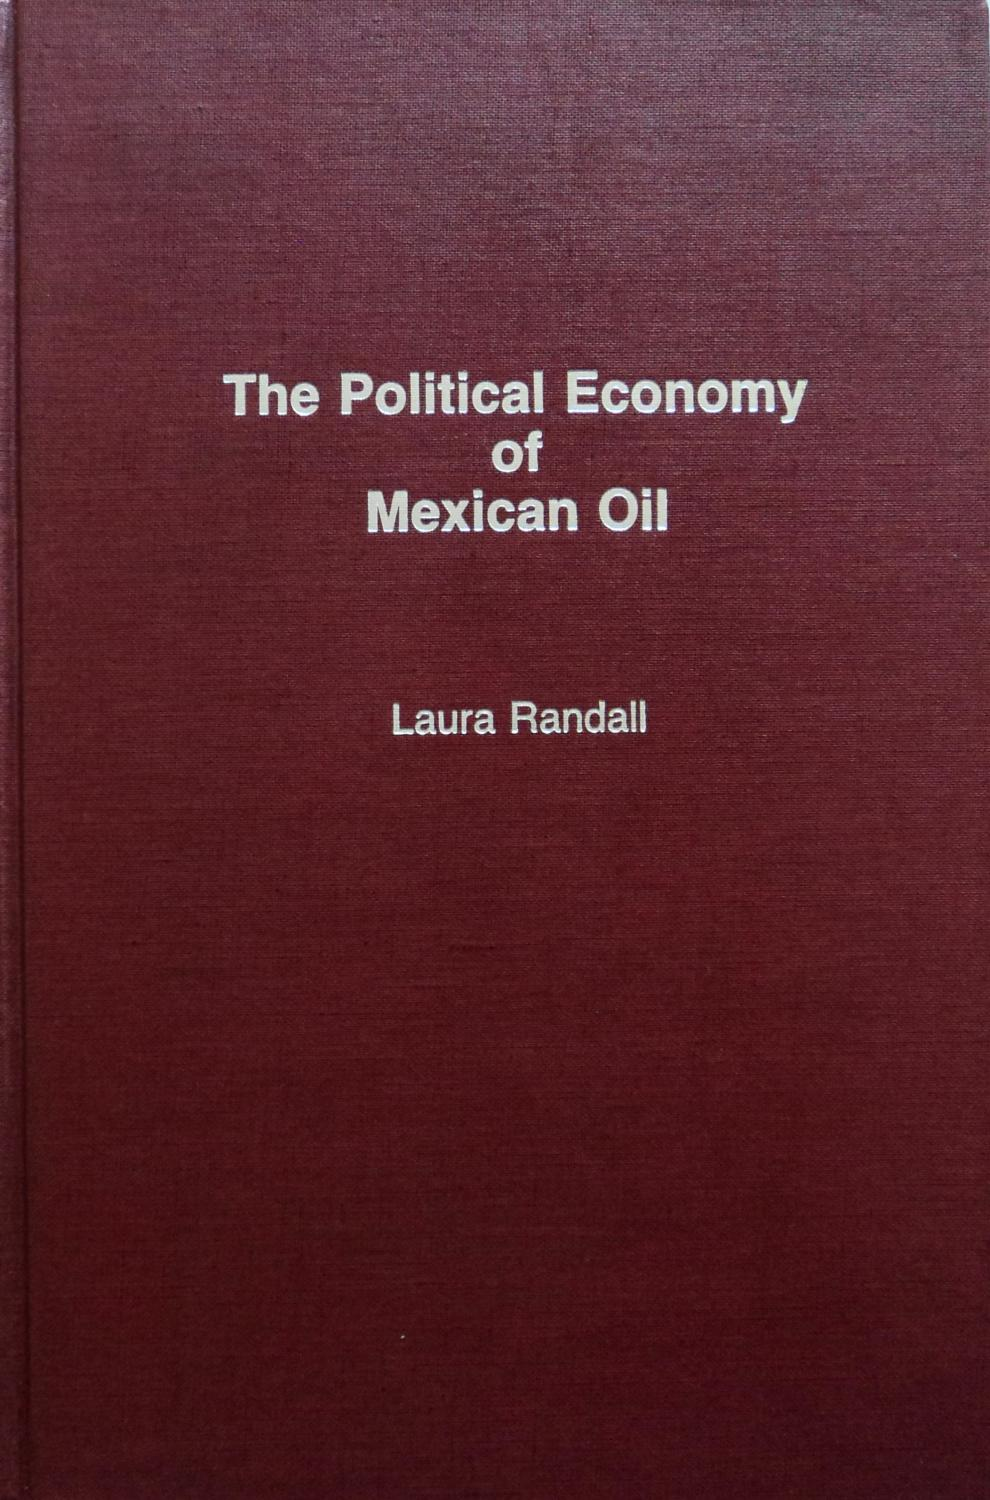 an introduction to the history and culture and the politics of mexican economy The scope of us-mexican relations is broad and goes beyond diplomatic and official contacts, and entails extensive commercial, cultural, and educational ties, with over 125 billion dollars of two.